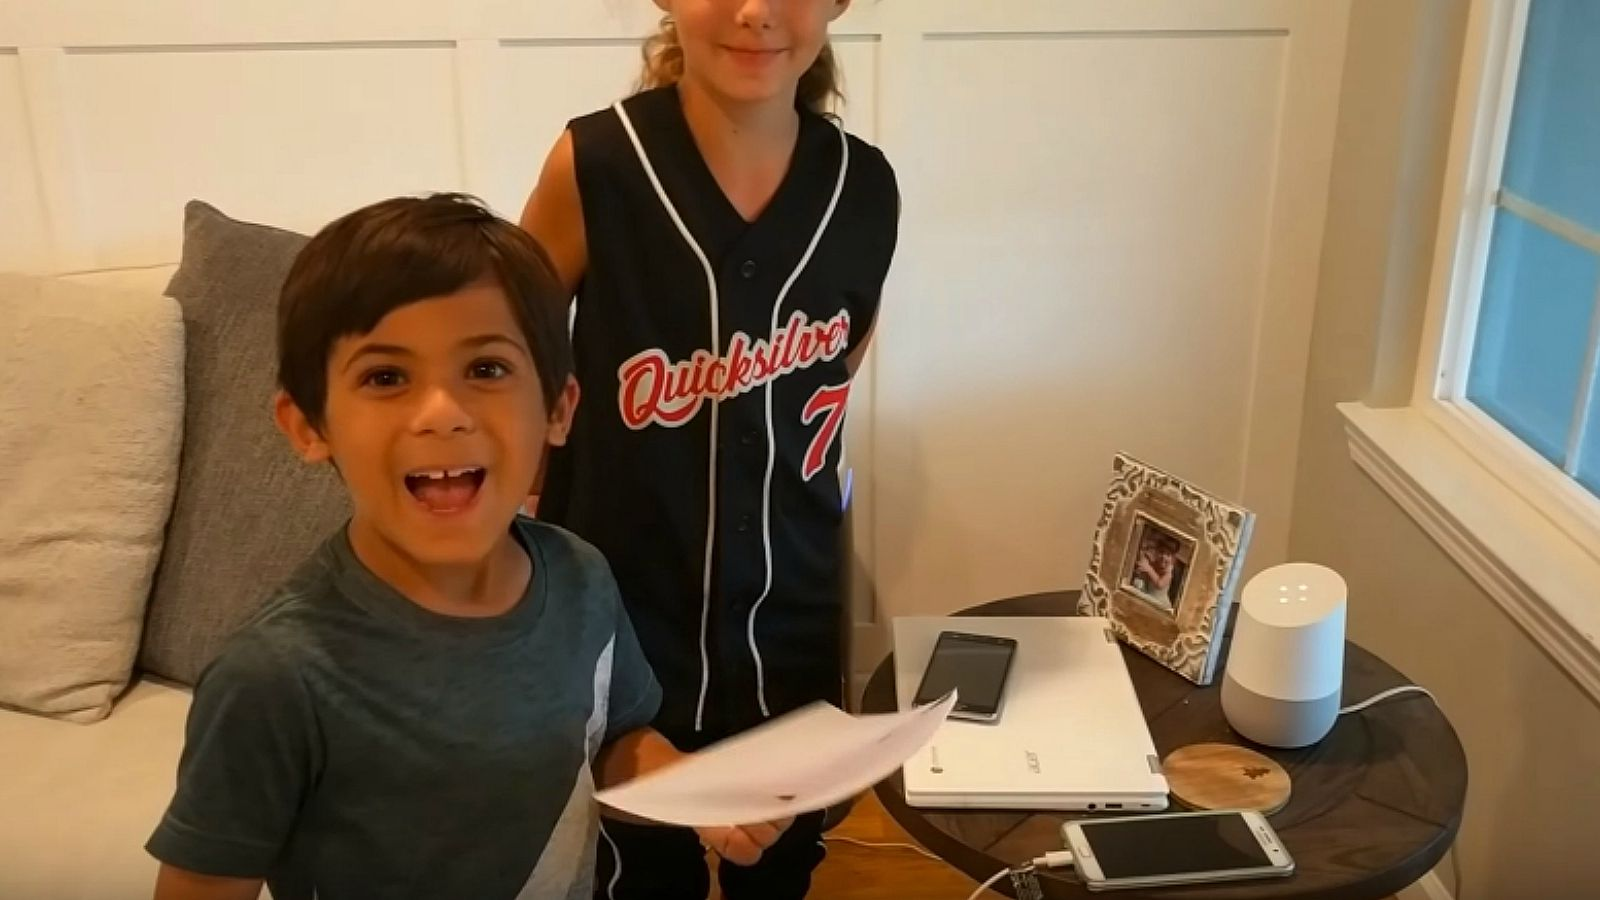 Google Home Surprises 7-Year-Old Boy with a Nintendo Switch.